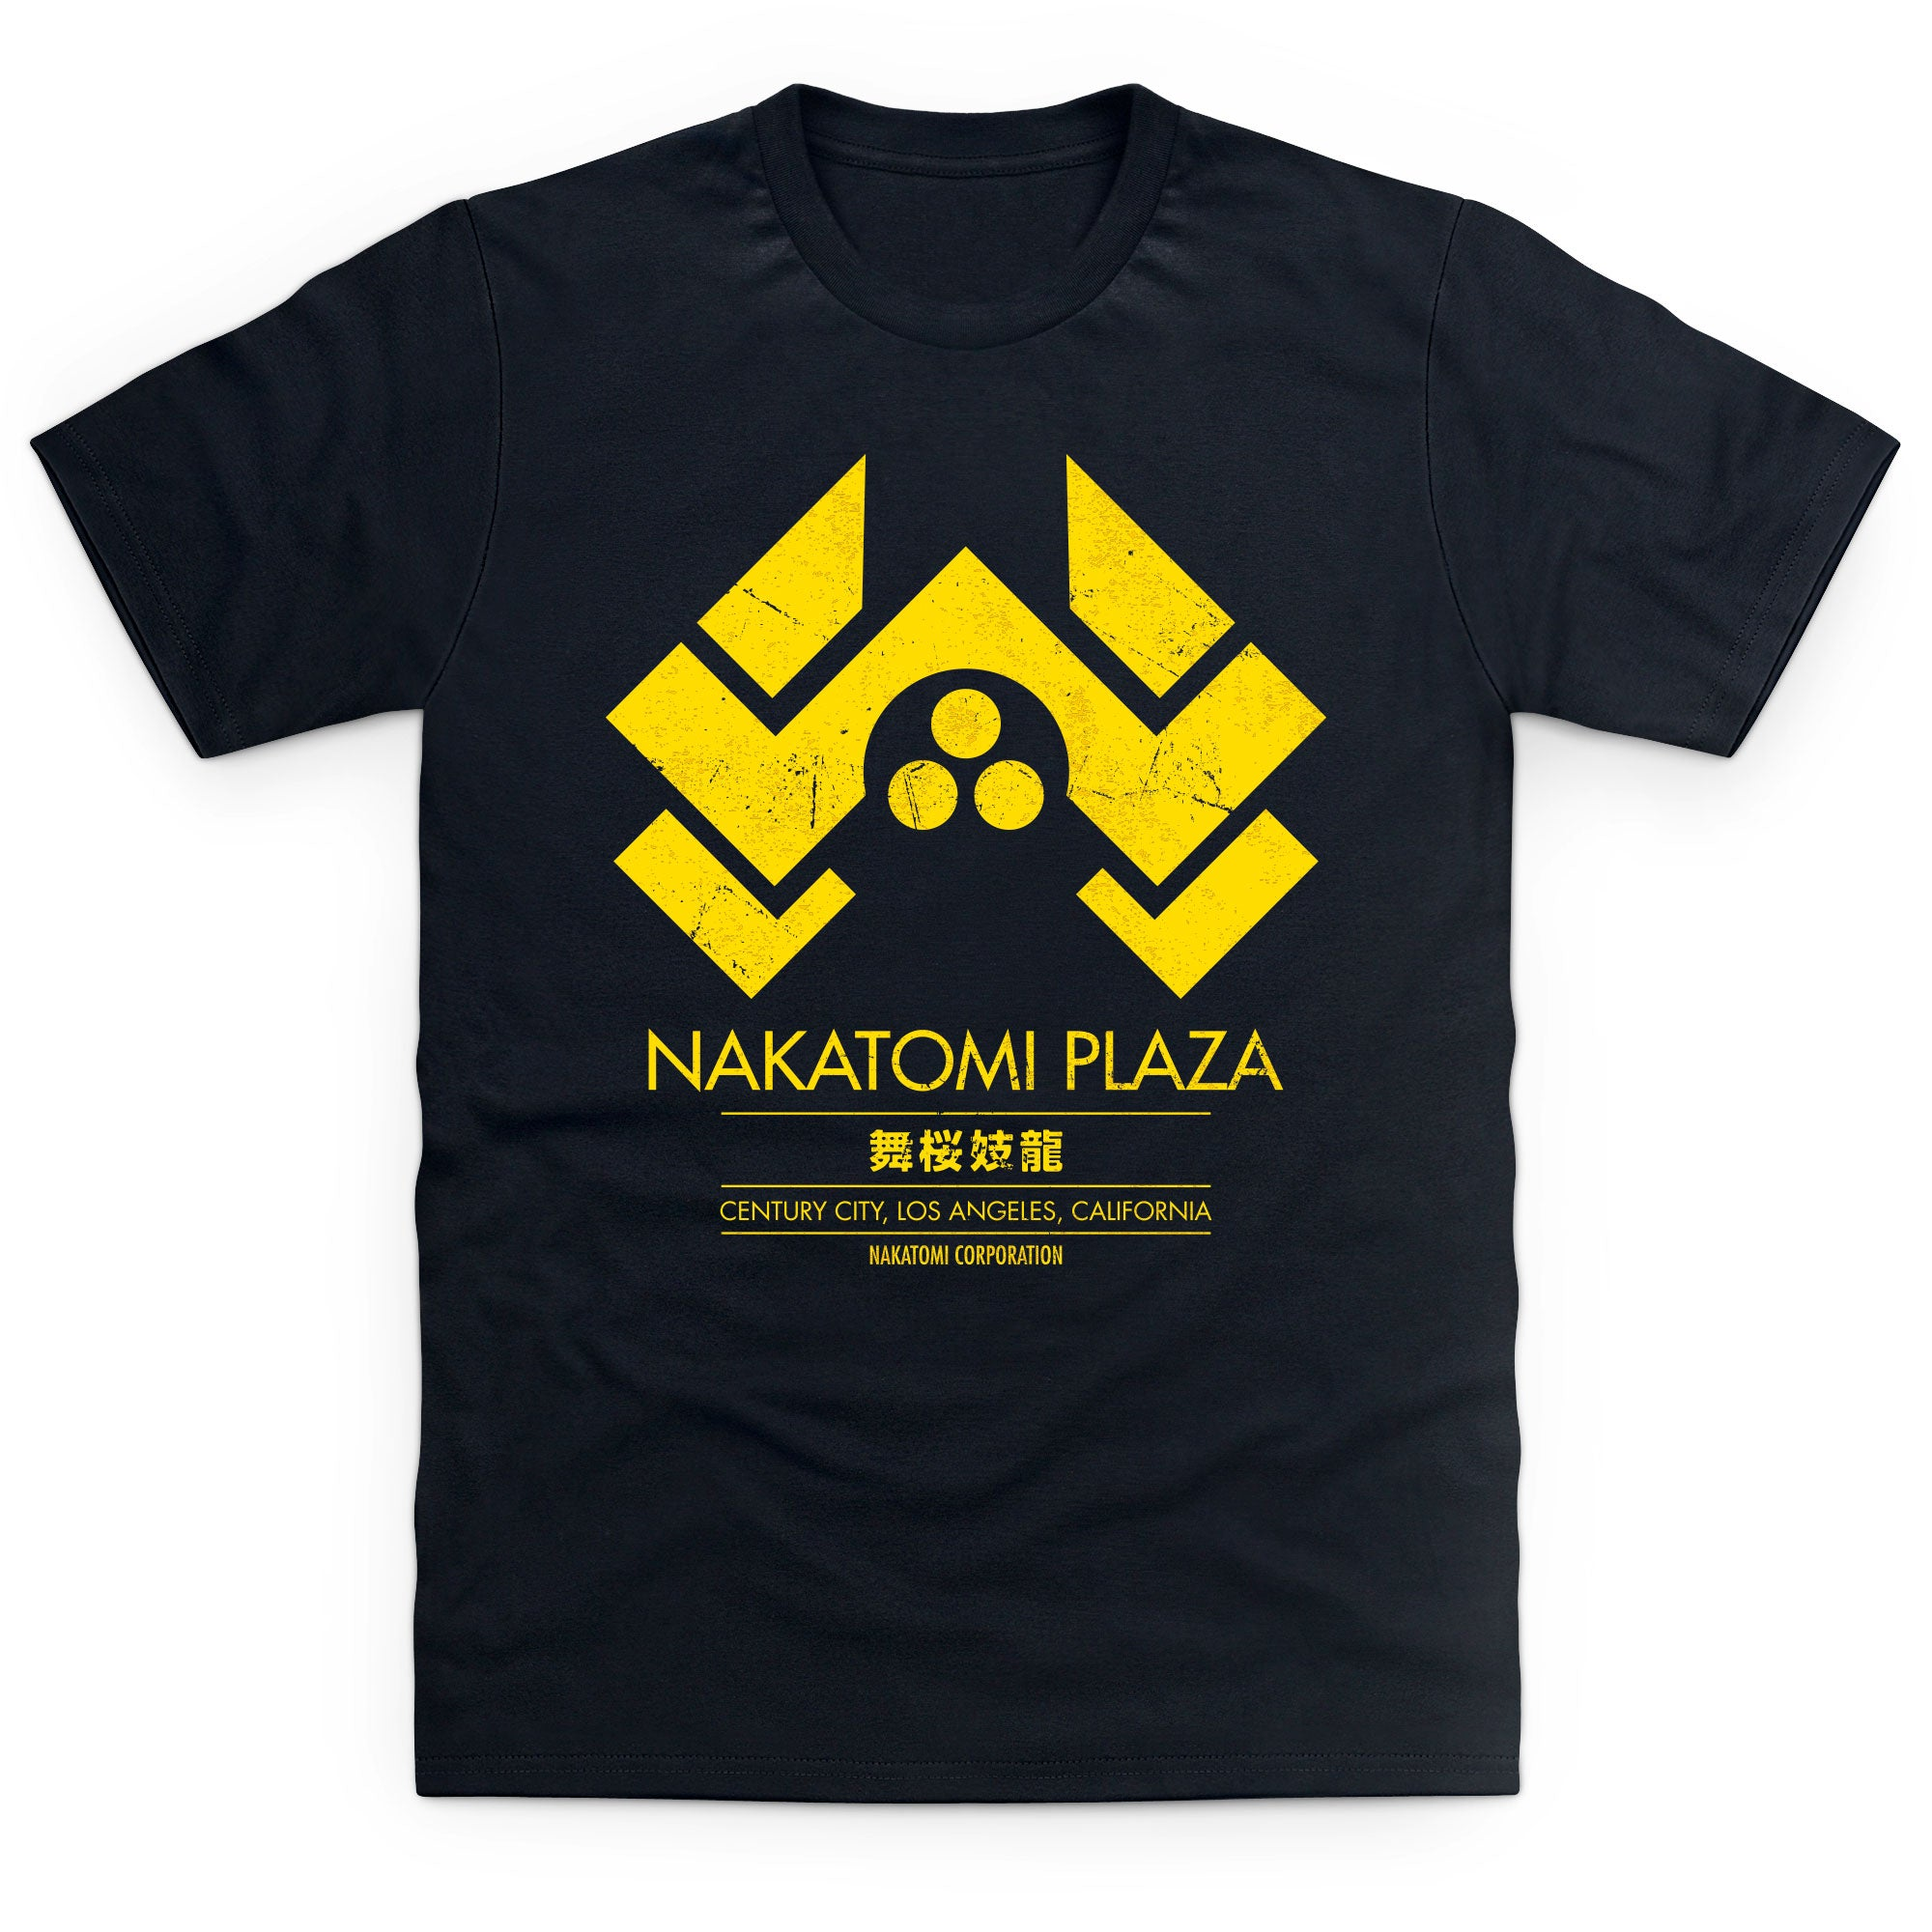 CHEAP Inspired By Die Hard – Nakatomi Plaza Kid's T Shirt 25874570297 – Clothing Accessories